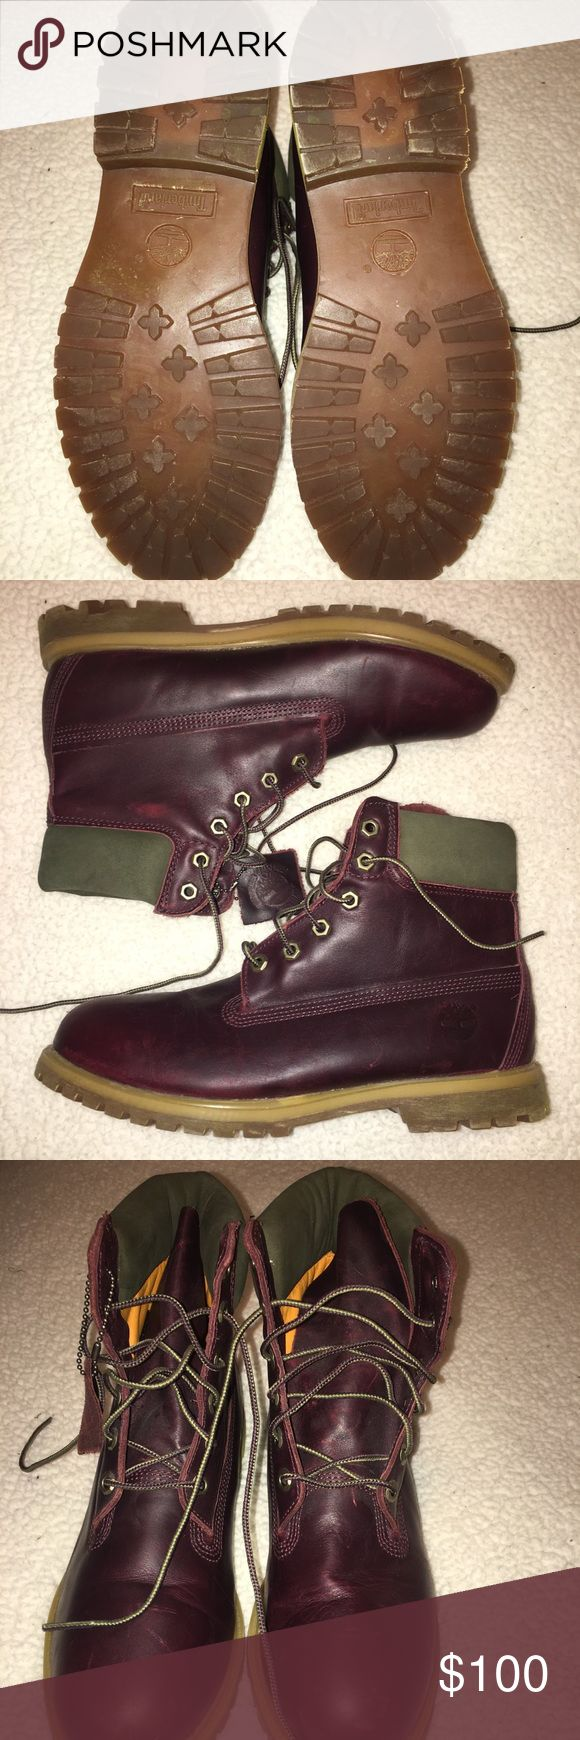 """Timberland 6"""" Dark Burgundy Leather Boot Like new! Worn 5 or less times! Great condition and a somewhat rare/unique color timberland Timberland Shoes Lace Up Boots"""